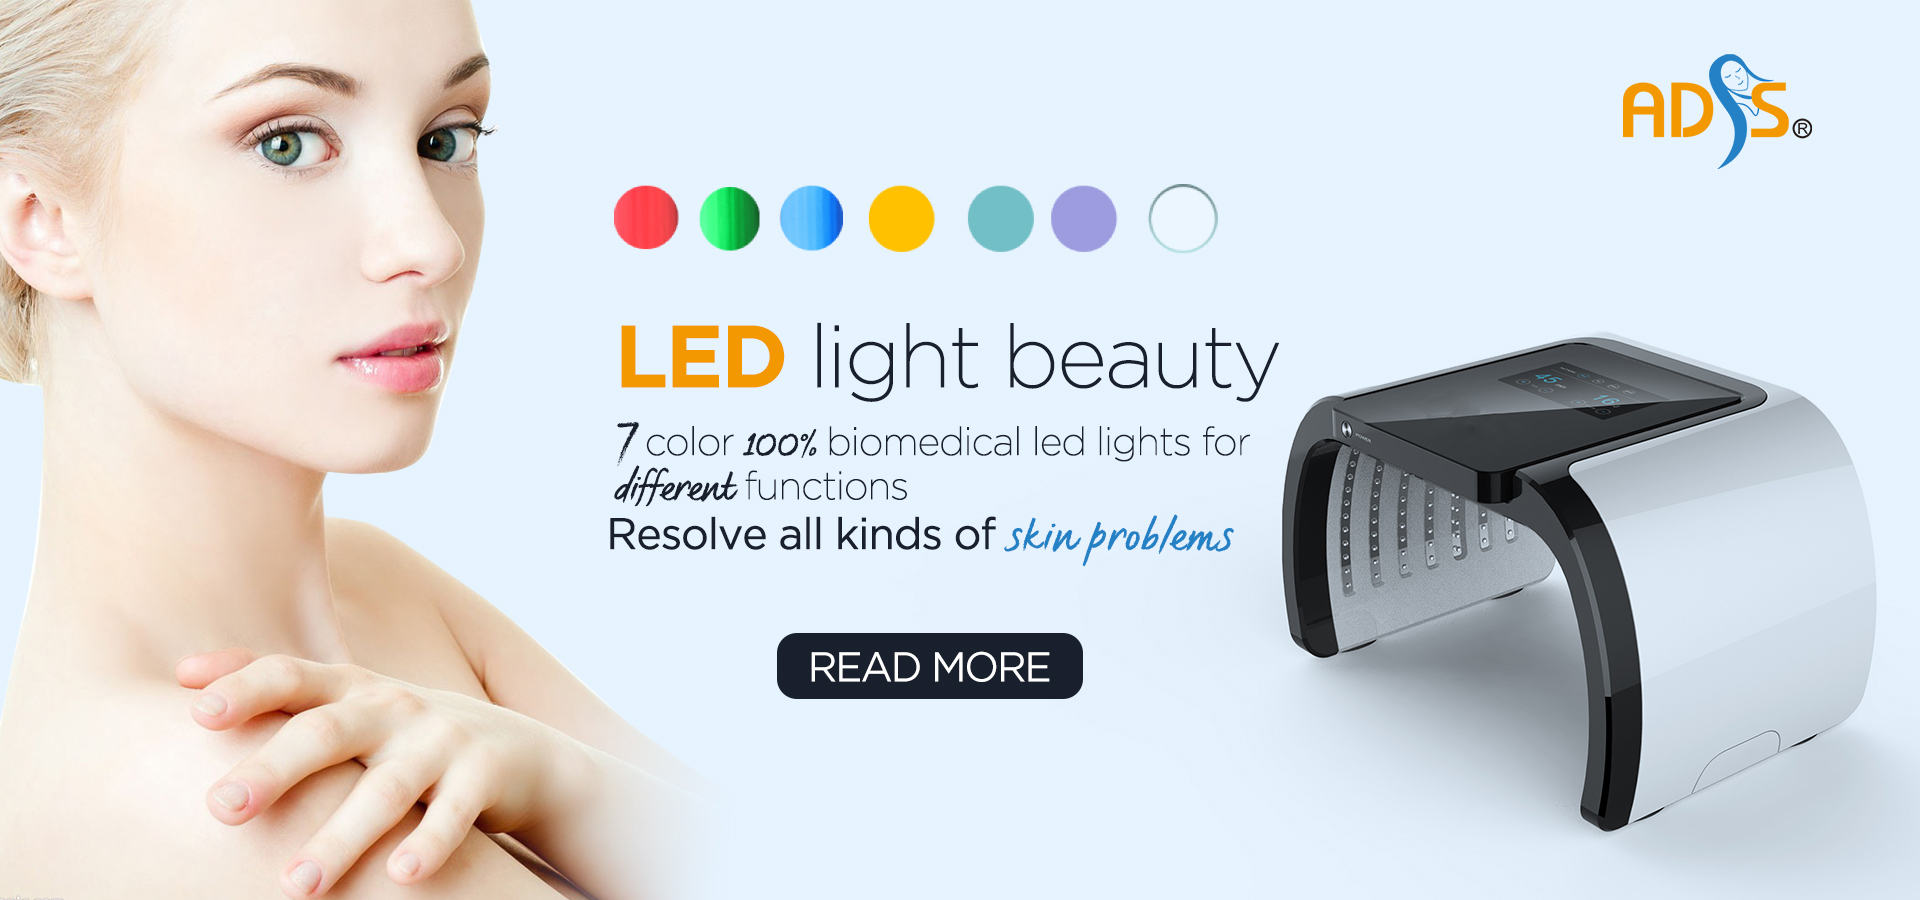 Skin Rejuvenation PDT LED Light Facial Therapy Beauty